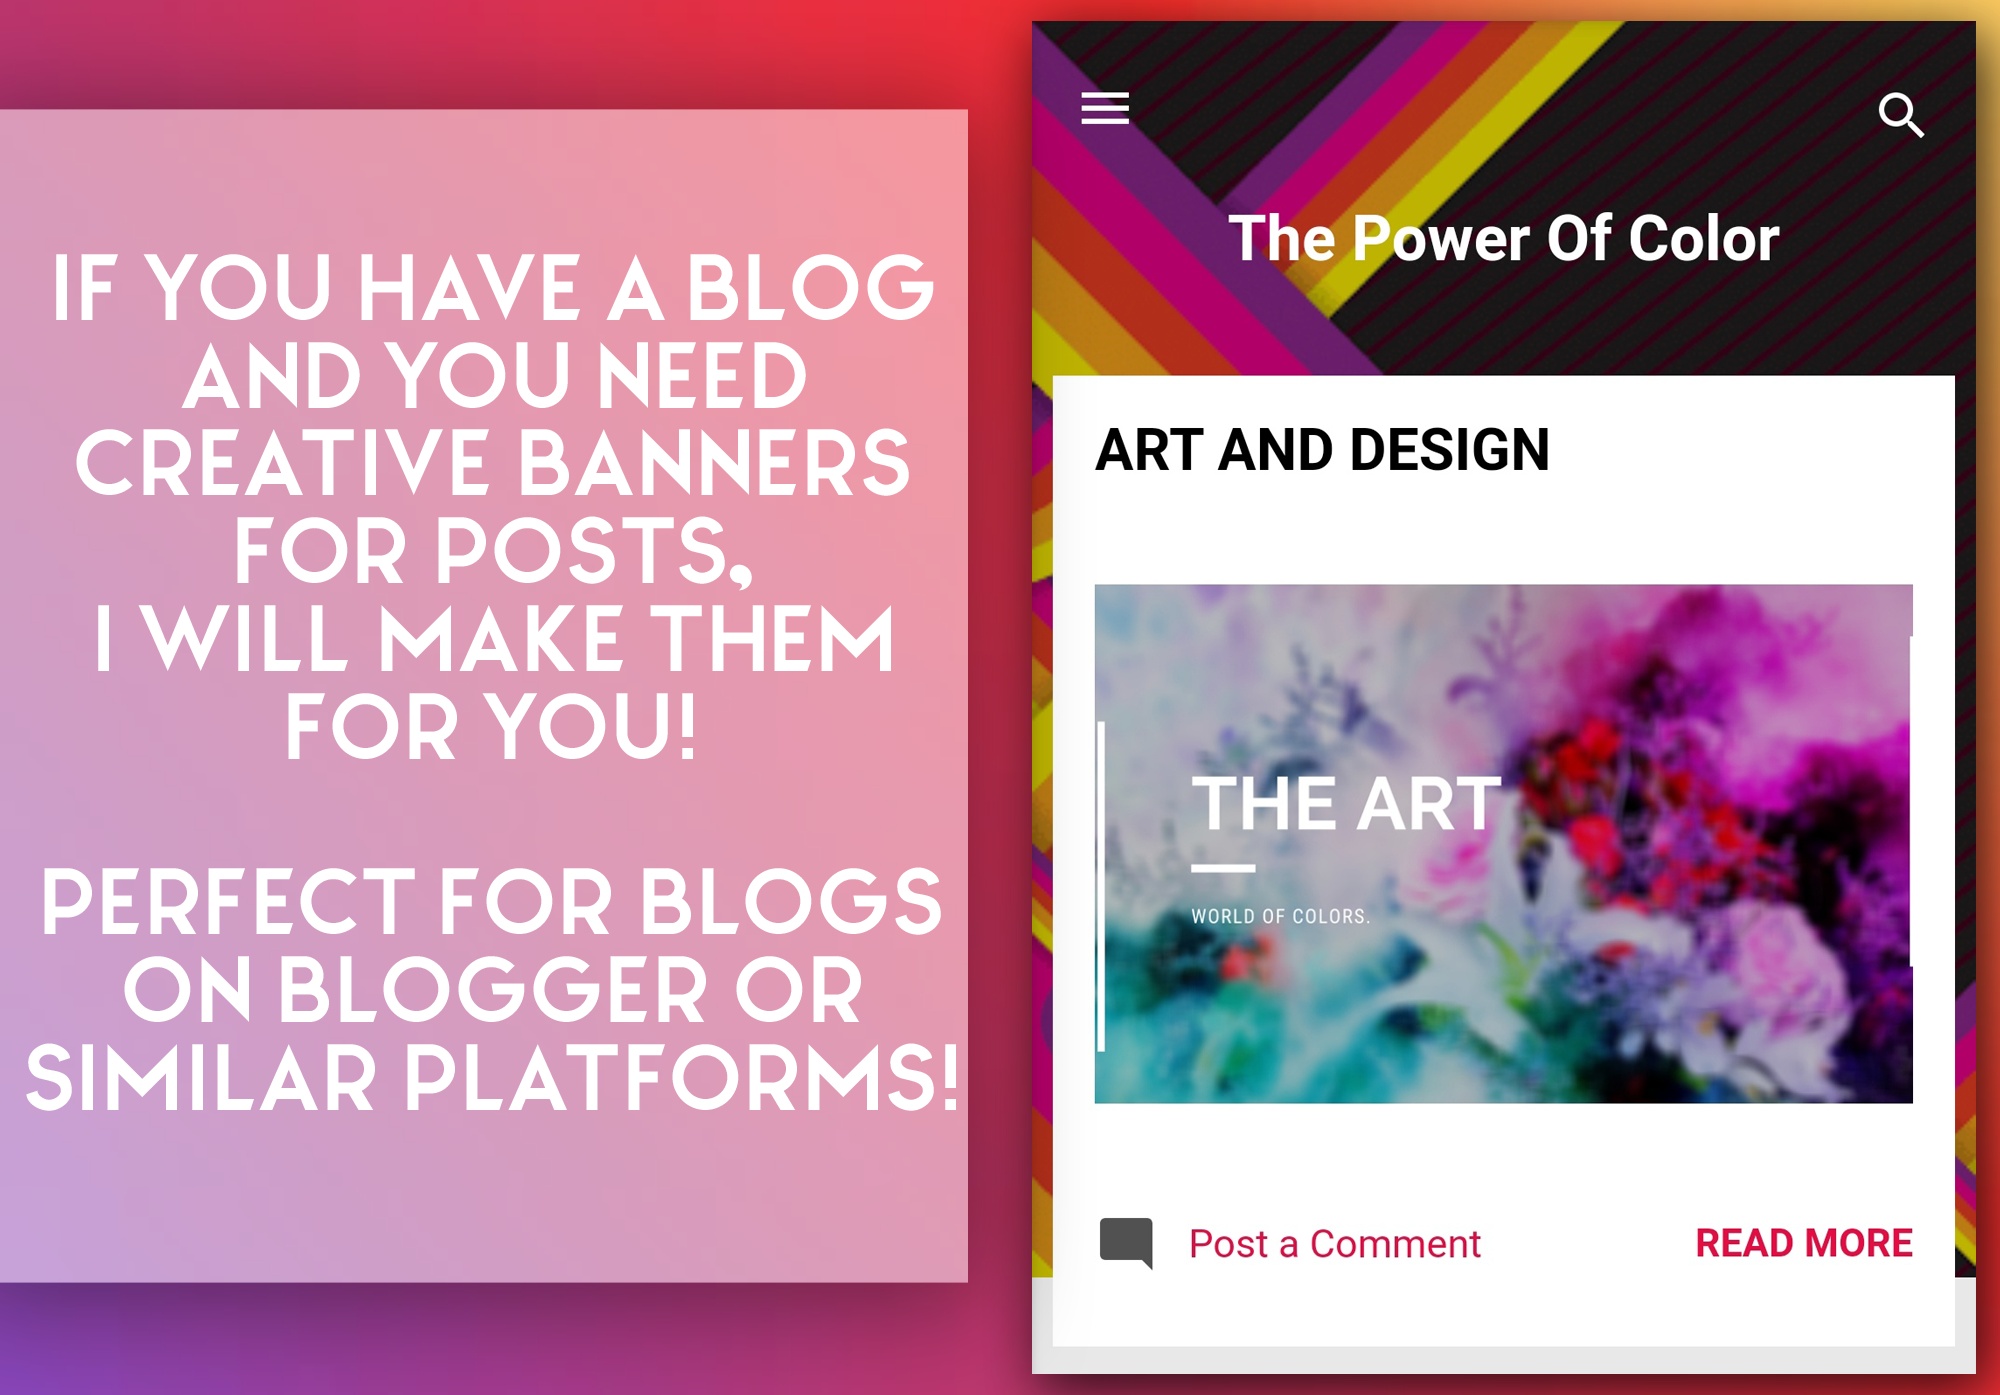 I will make great post banners for any blog!